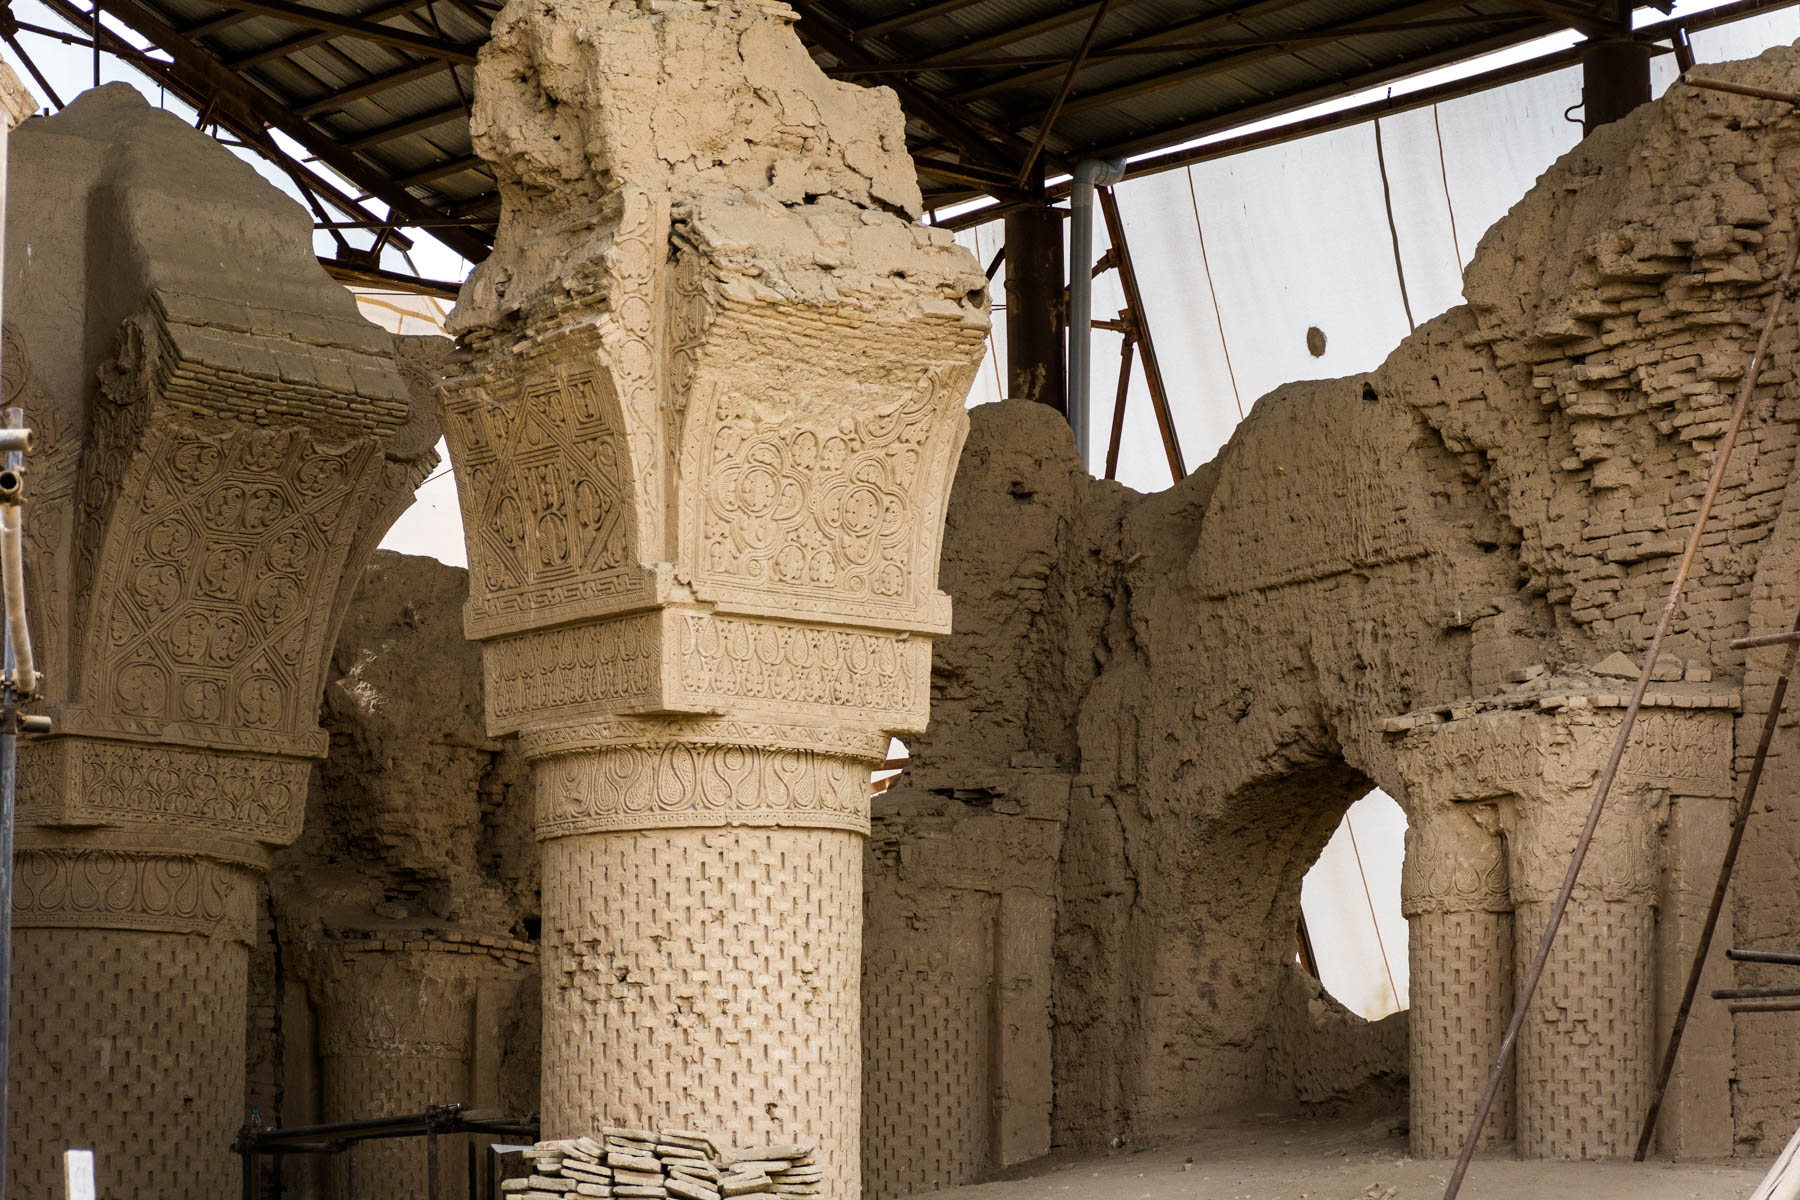 What is baksheesh? - Restoration of the Nuh Gunbad mosque in Balkh, Afghanistan - Lost With Purpose